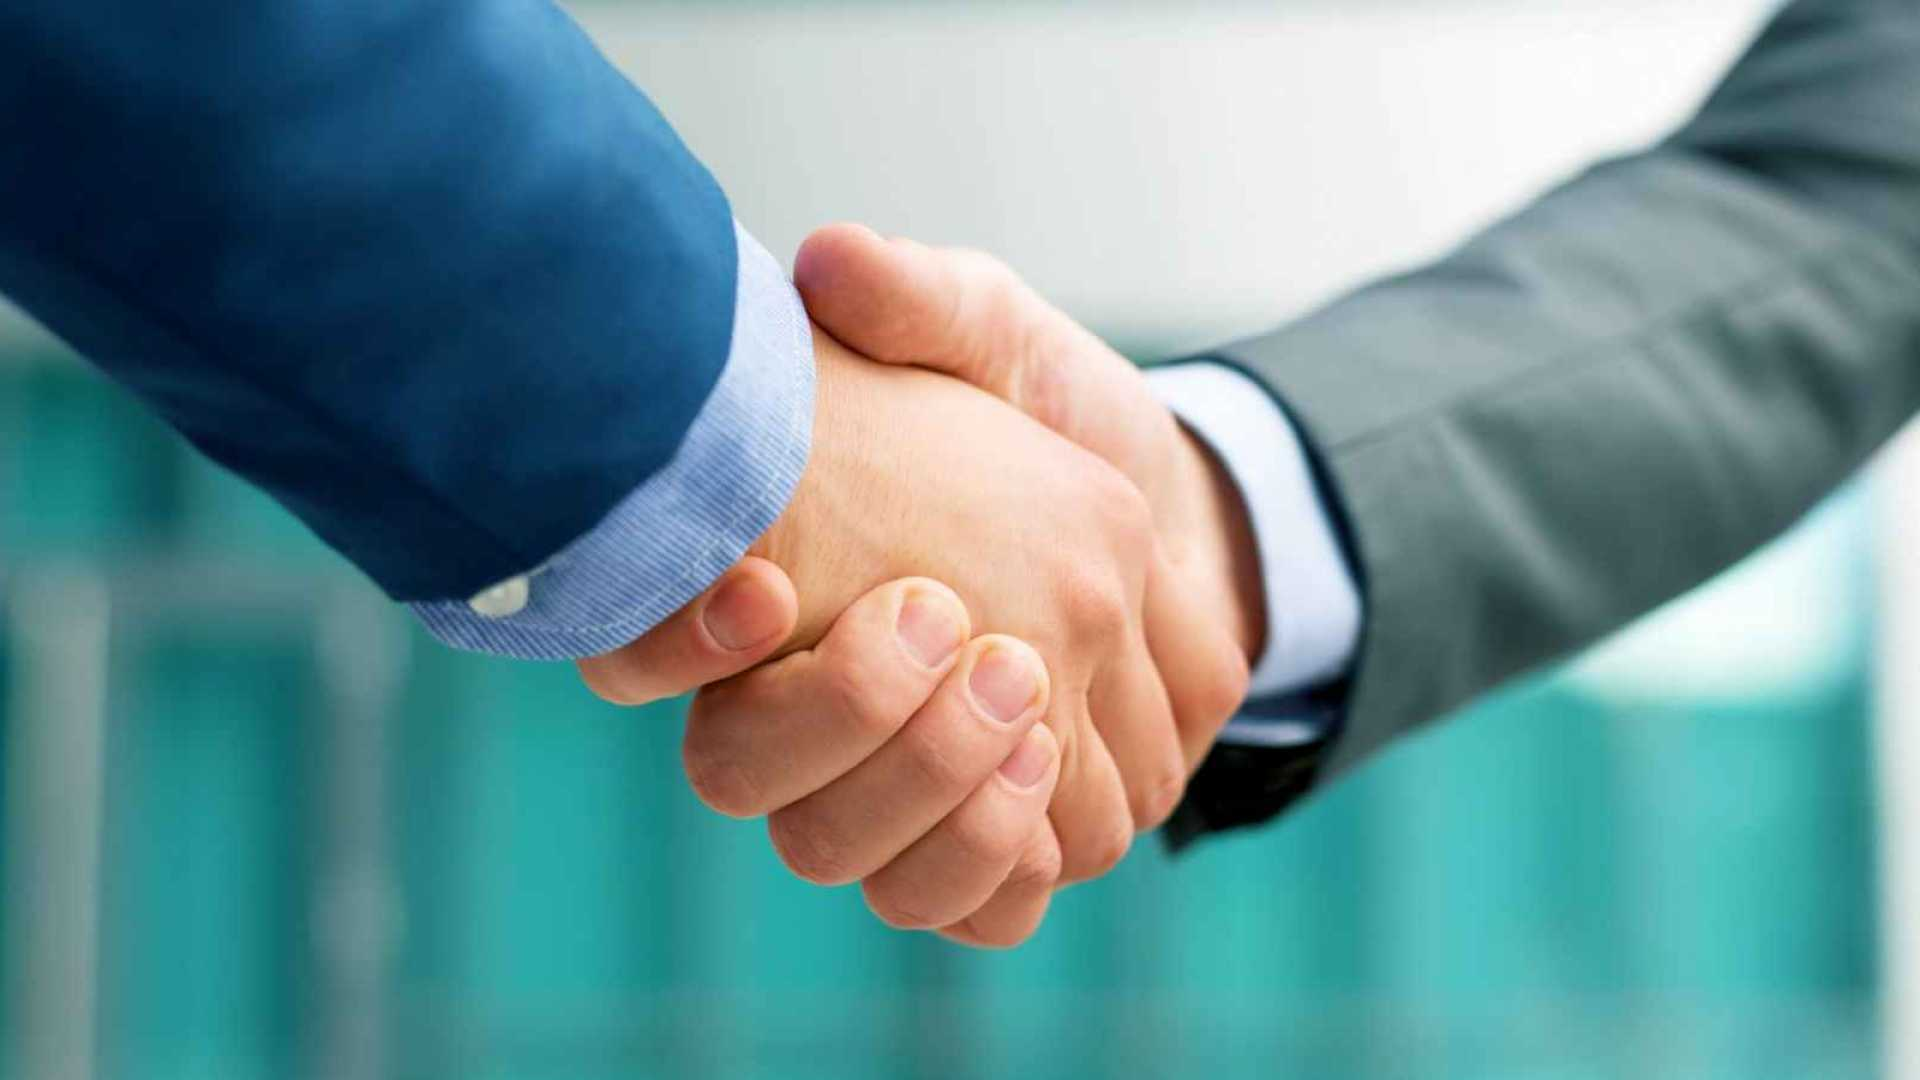 4 Powerful Phrases That Can Give You the Upper Hand in Any Tough Job Negotiation